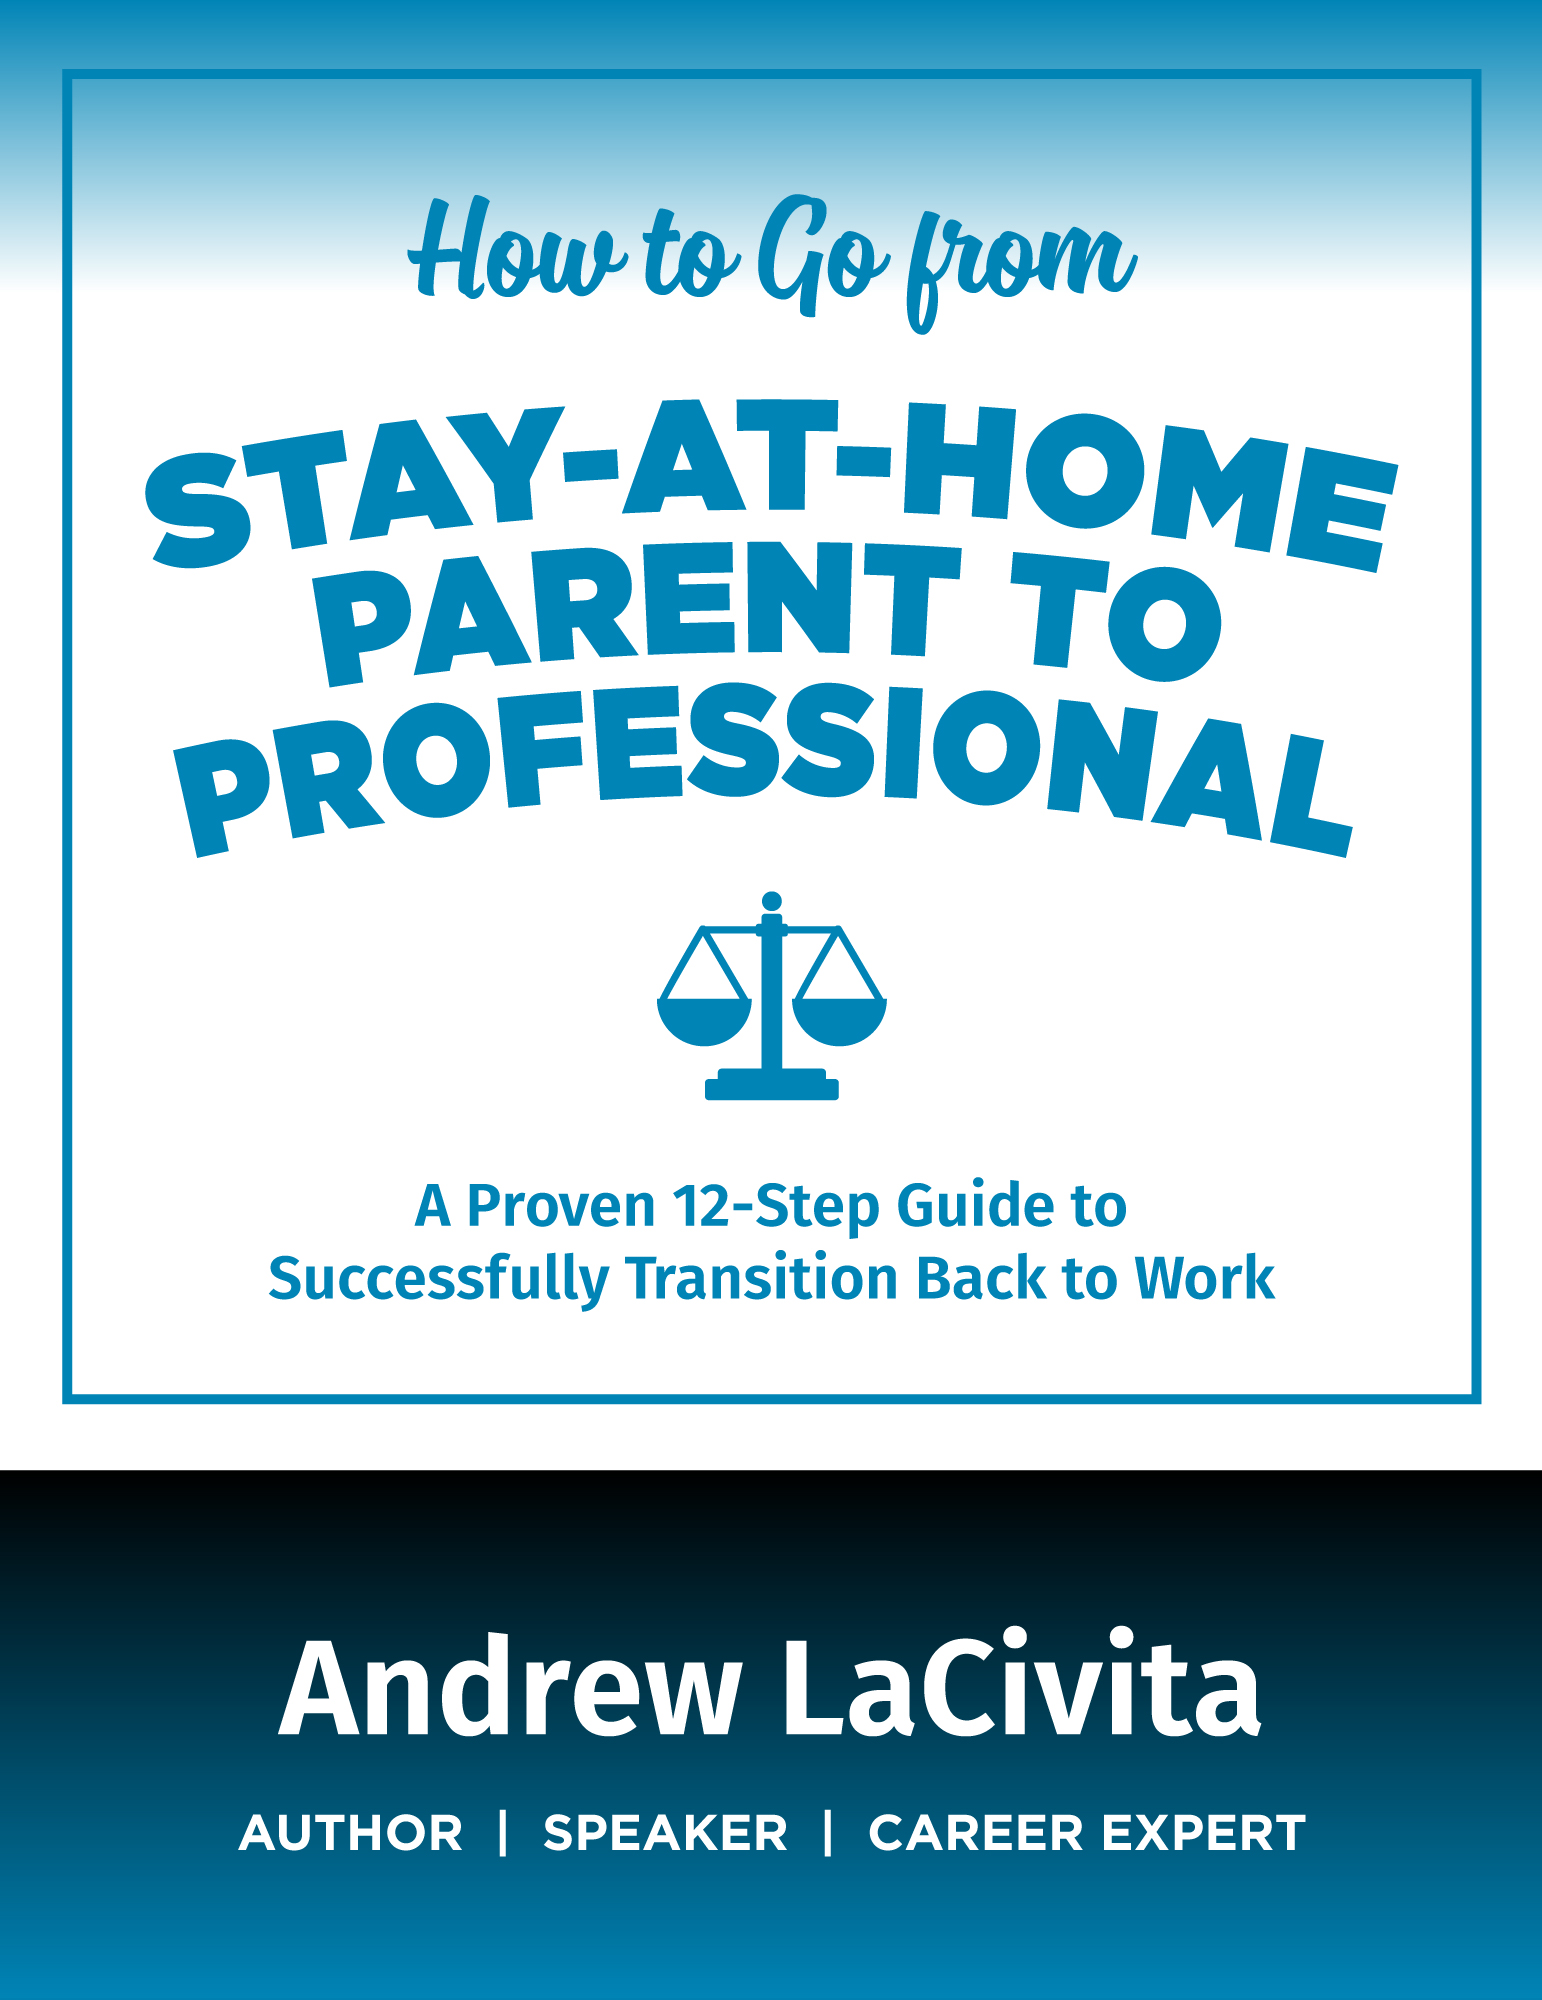 How to go from stay-at-home parent to professional